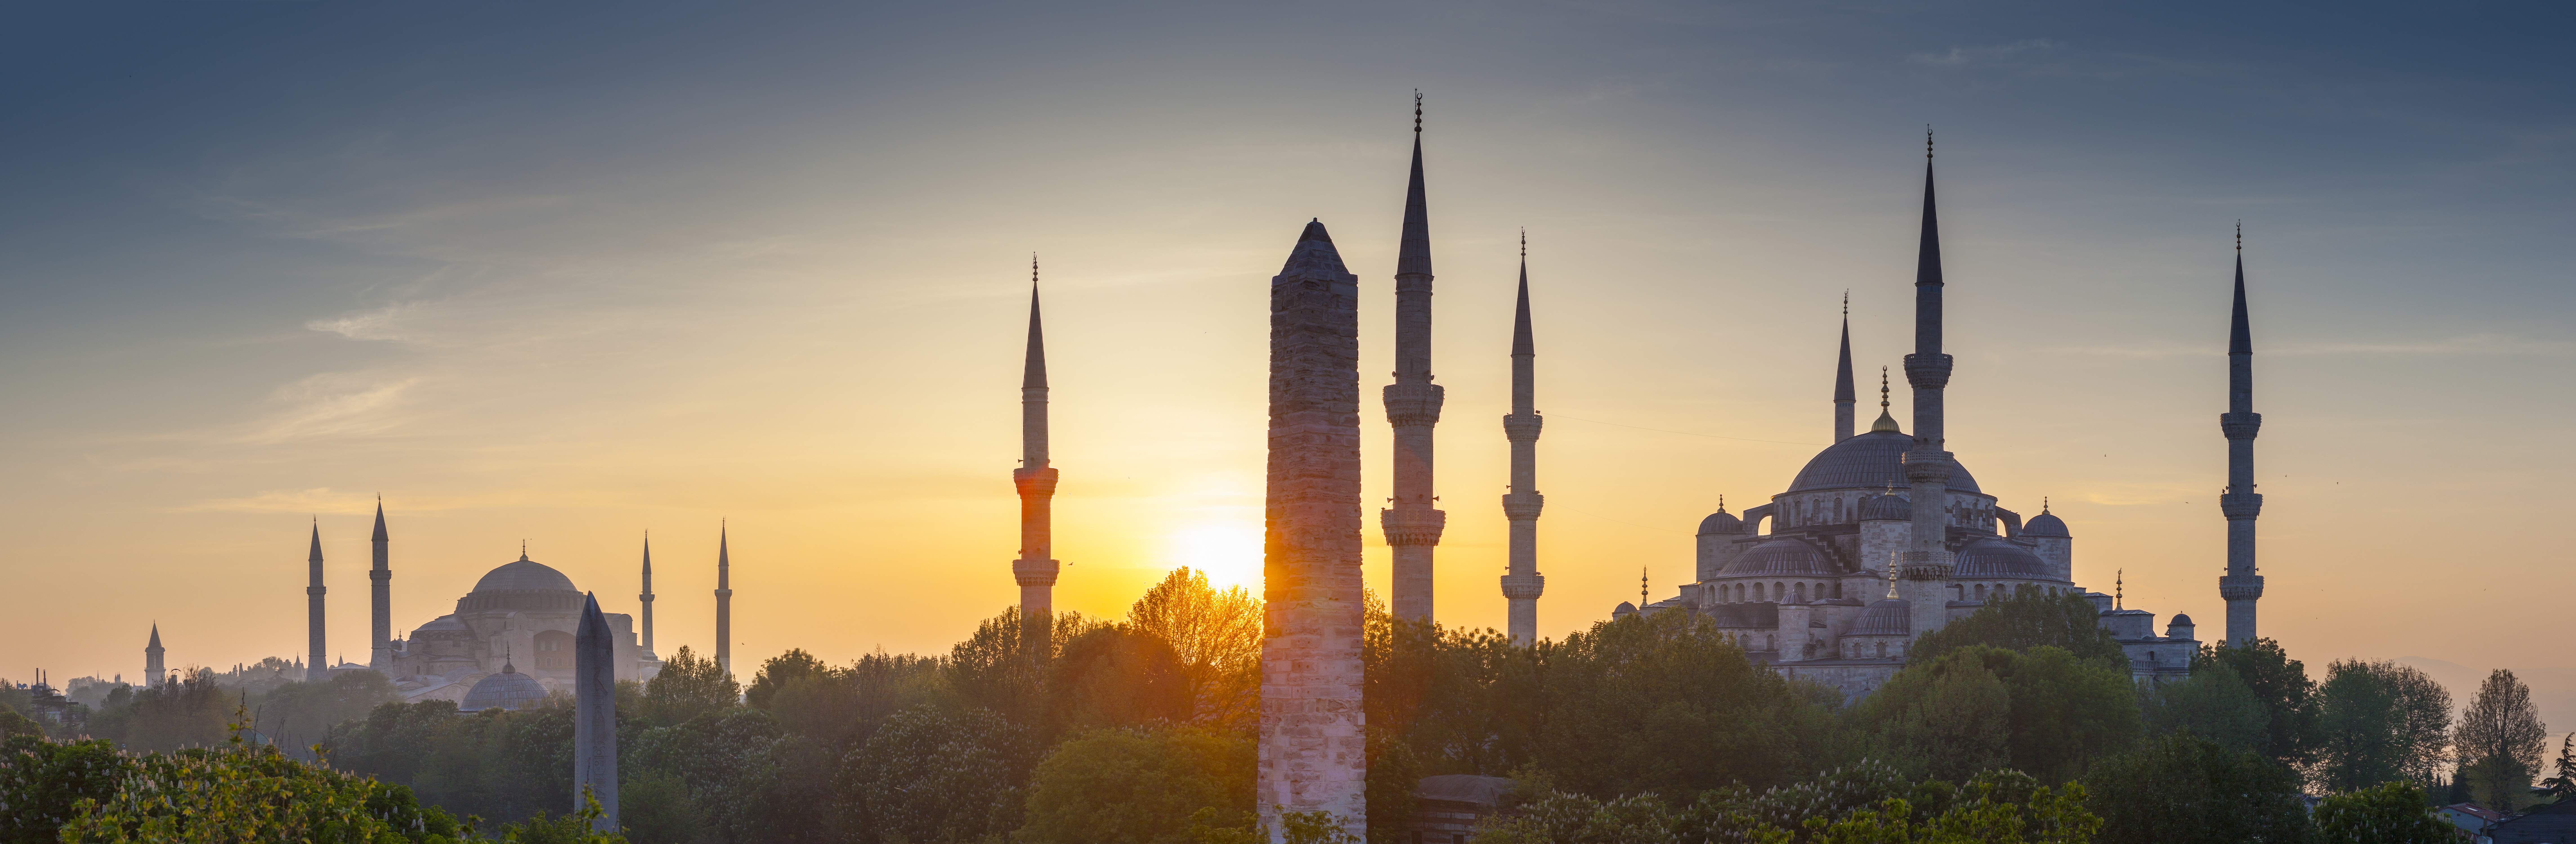 Should the accession process of Turkey to the EU be pursued?